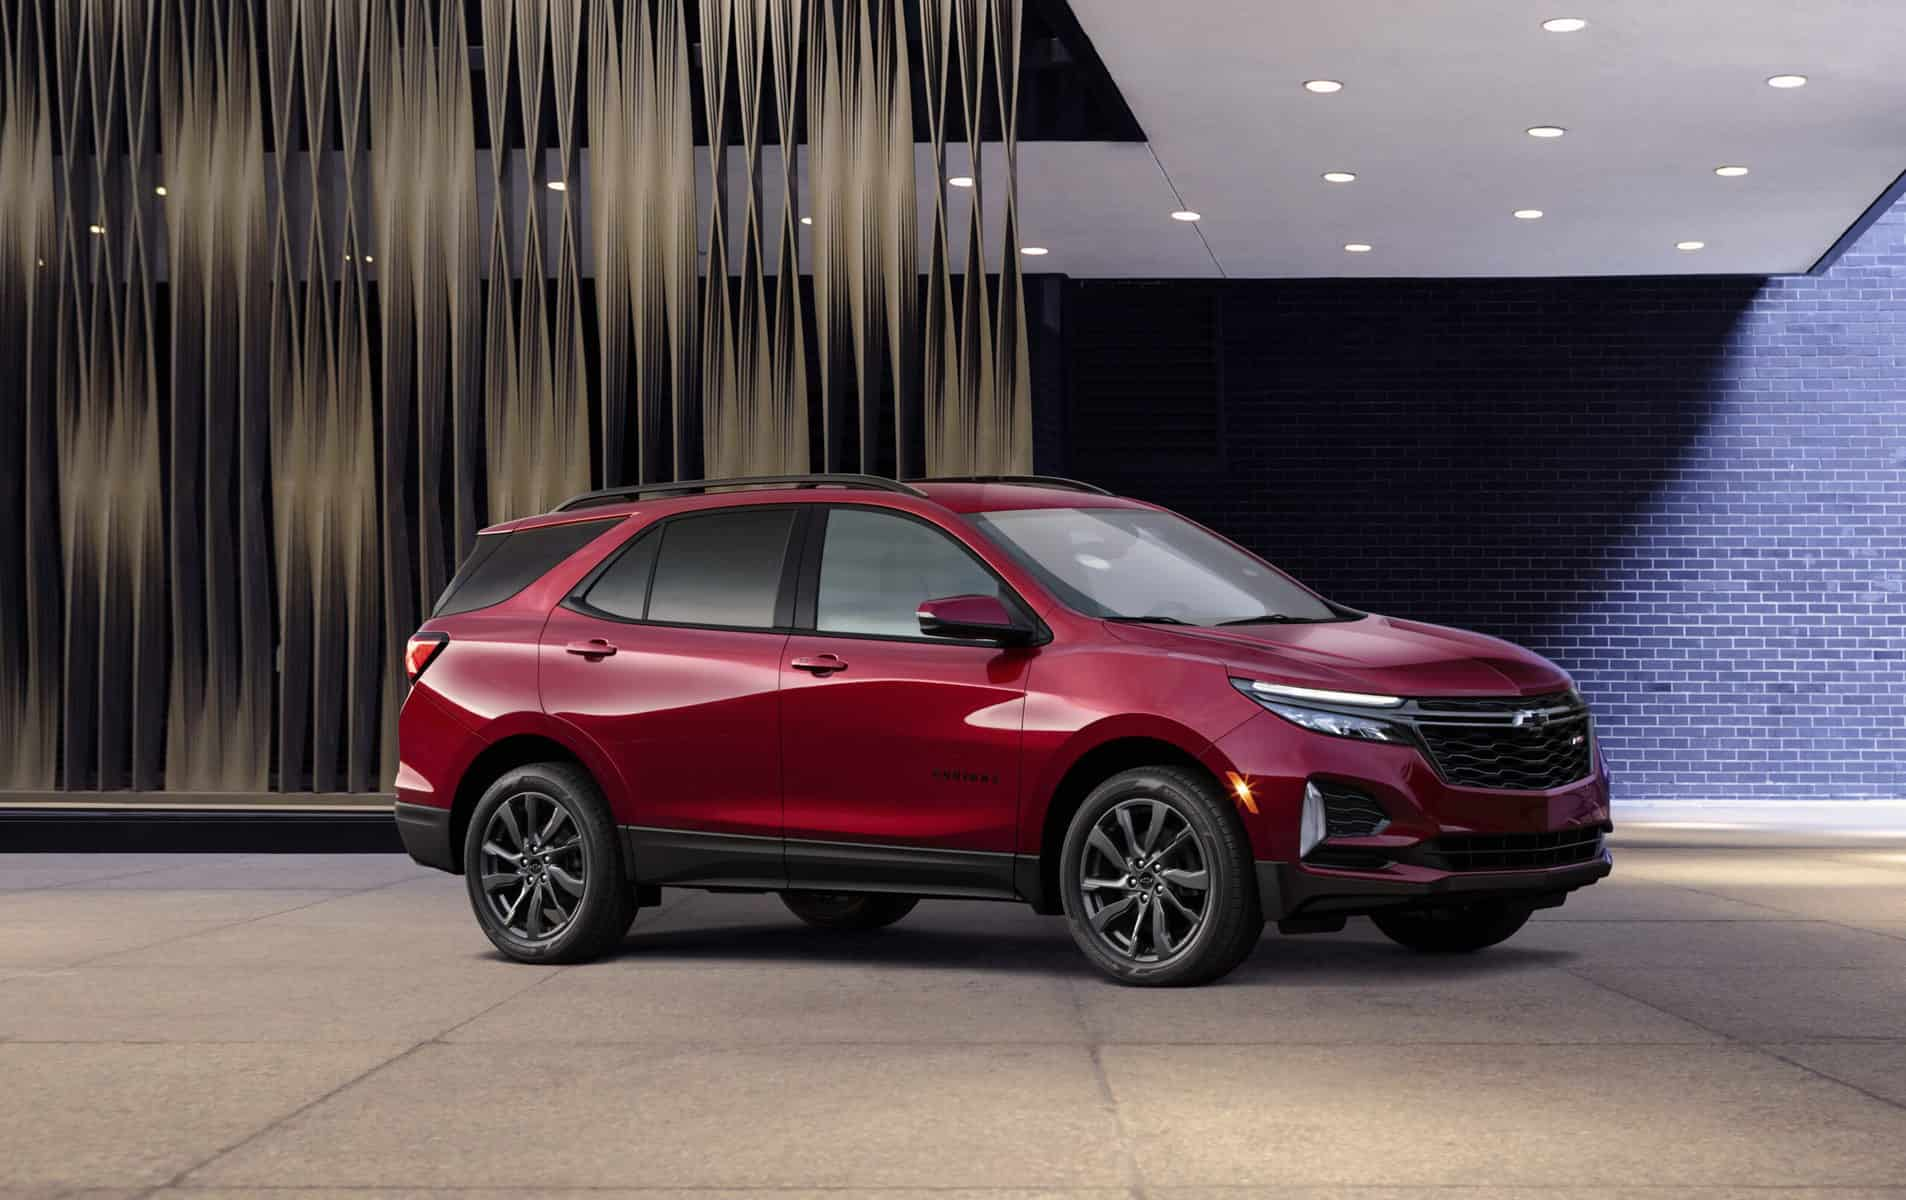 What Are The Best Years For The Chevy Equinox